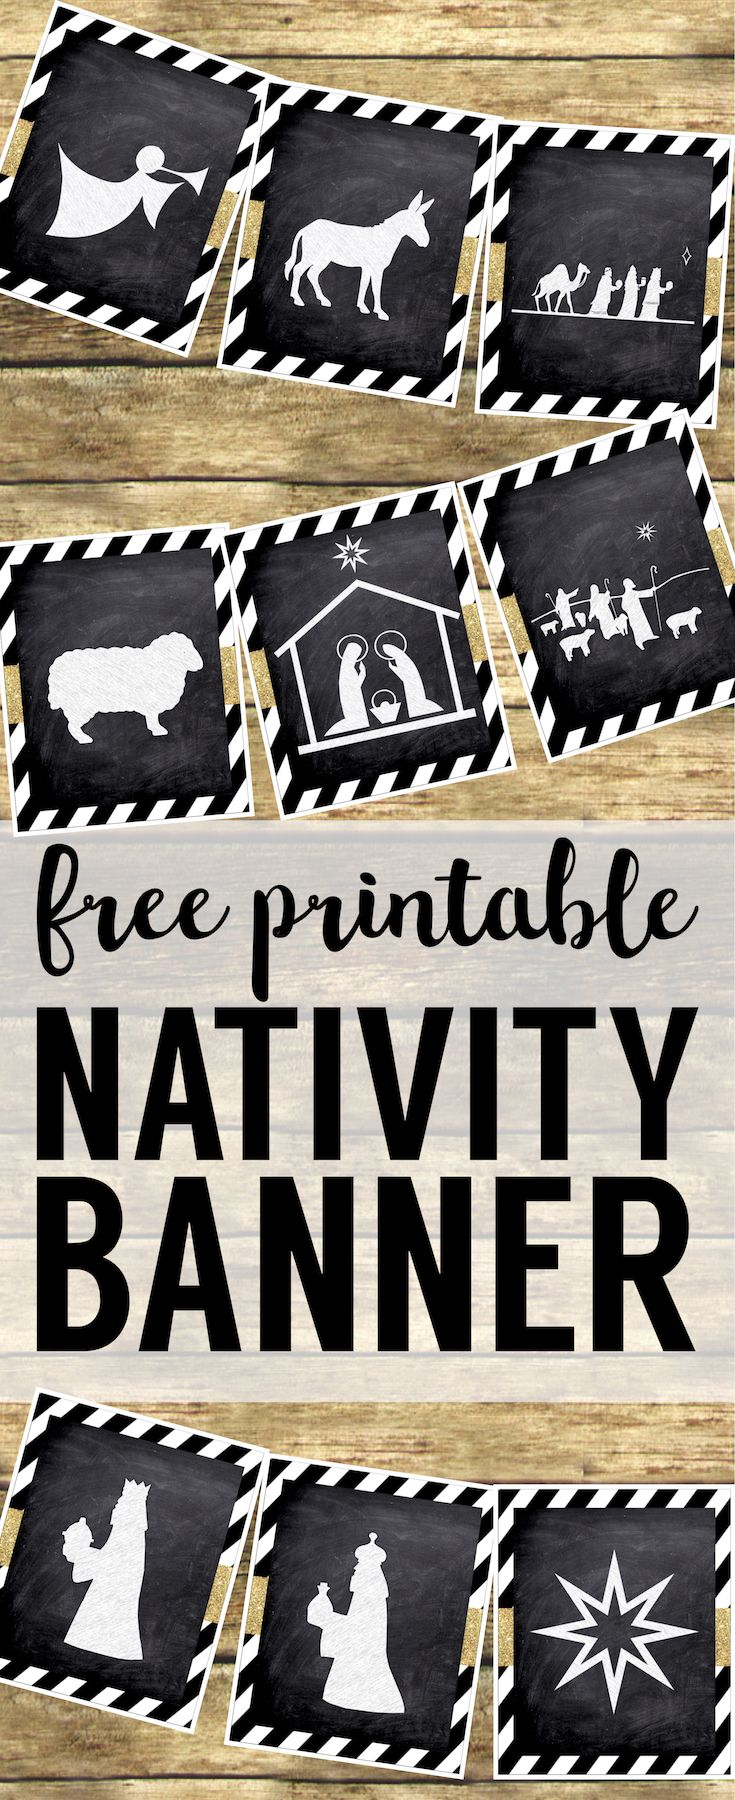 Christmas Nativity Banner free printable. Print this silhouette banner for some easy and cute Christmas decor. These chalkboard nativity signs with gold embellishment are easy Christmas decorations.